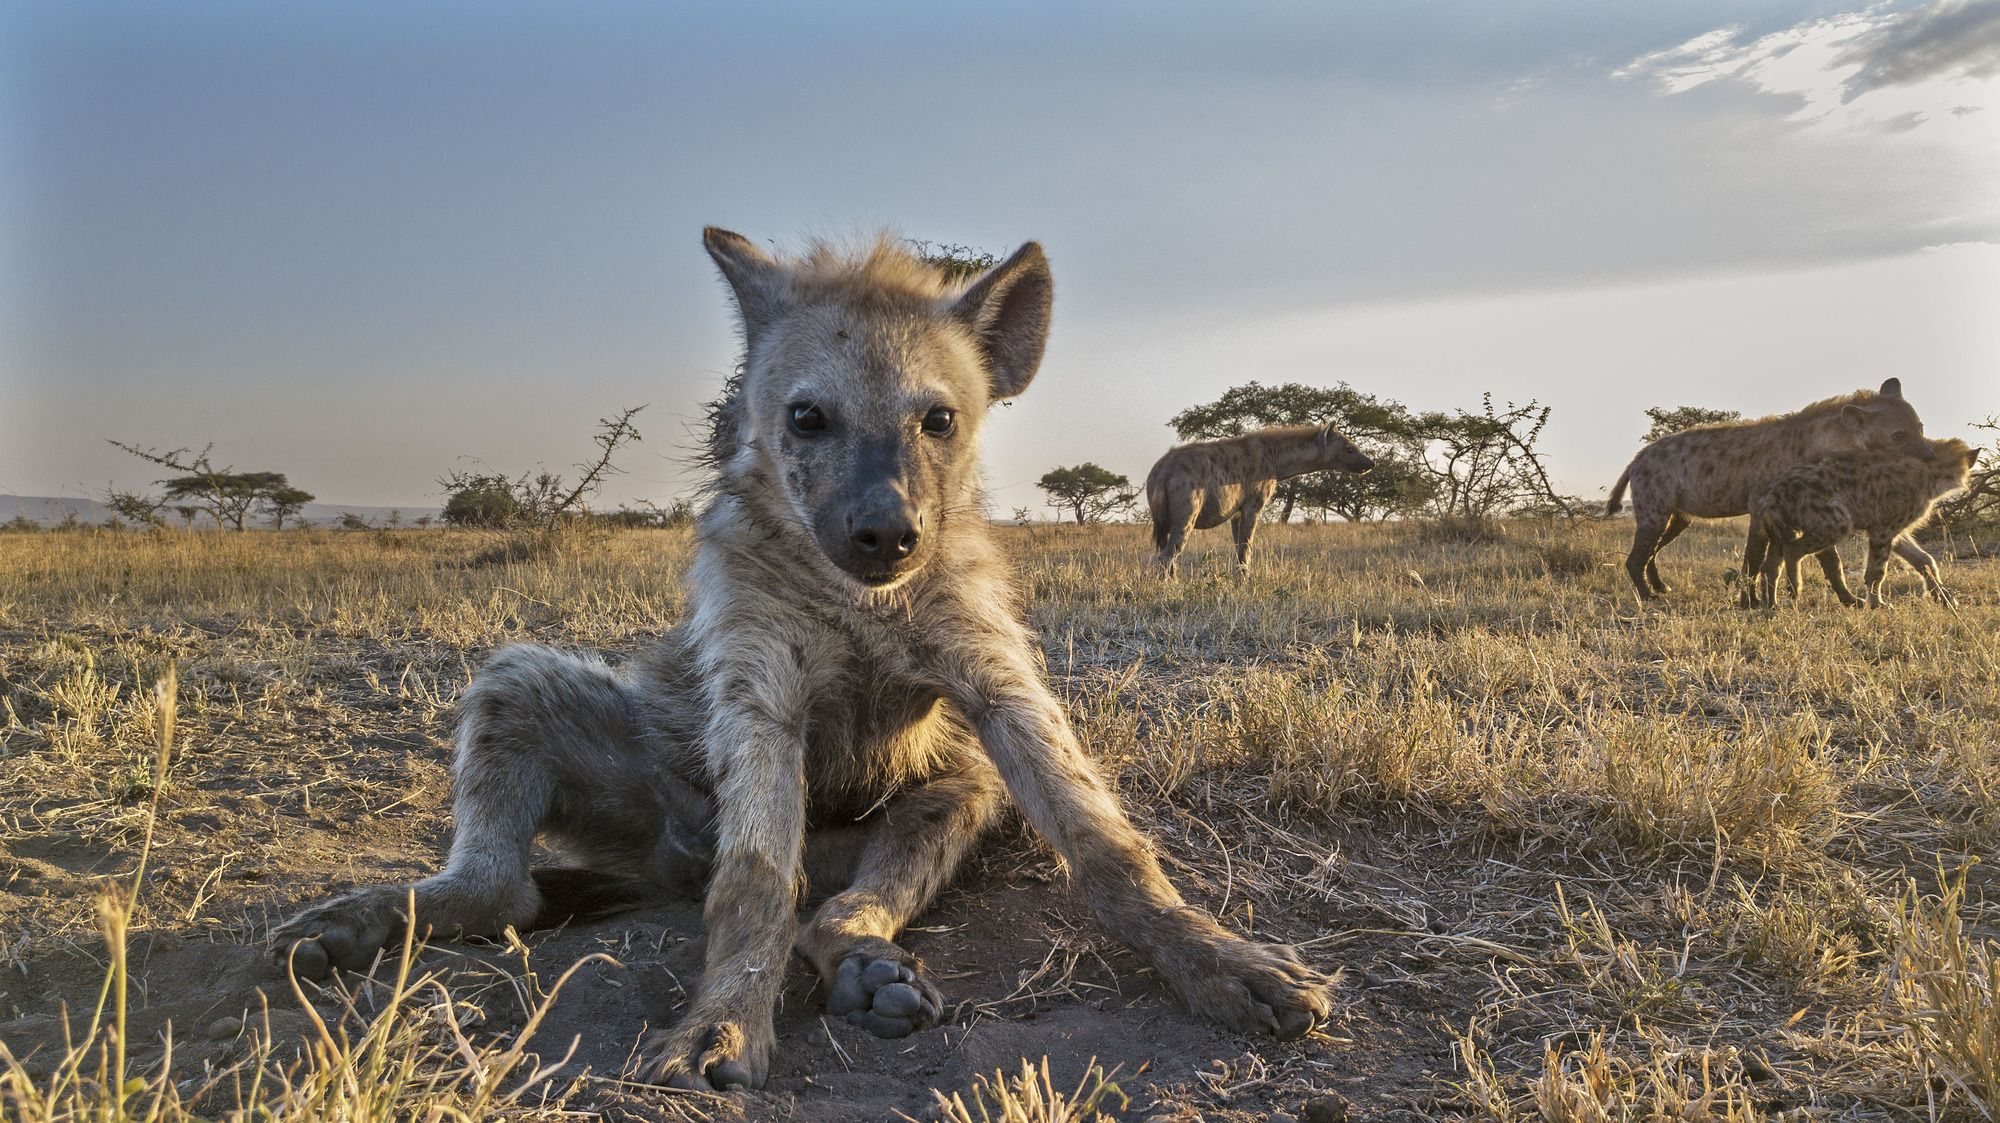 A hyena featured in Serengeti (John Downer Productions/ Matthew Goodman/BBC/PA)